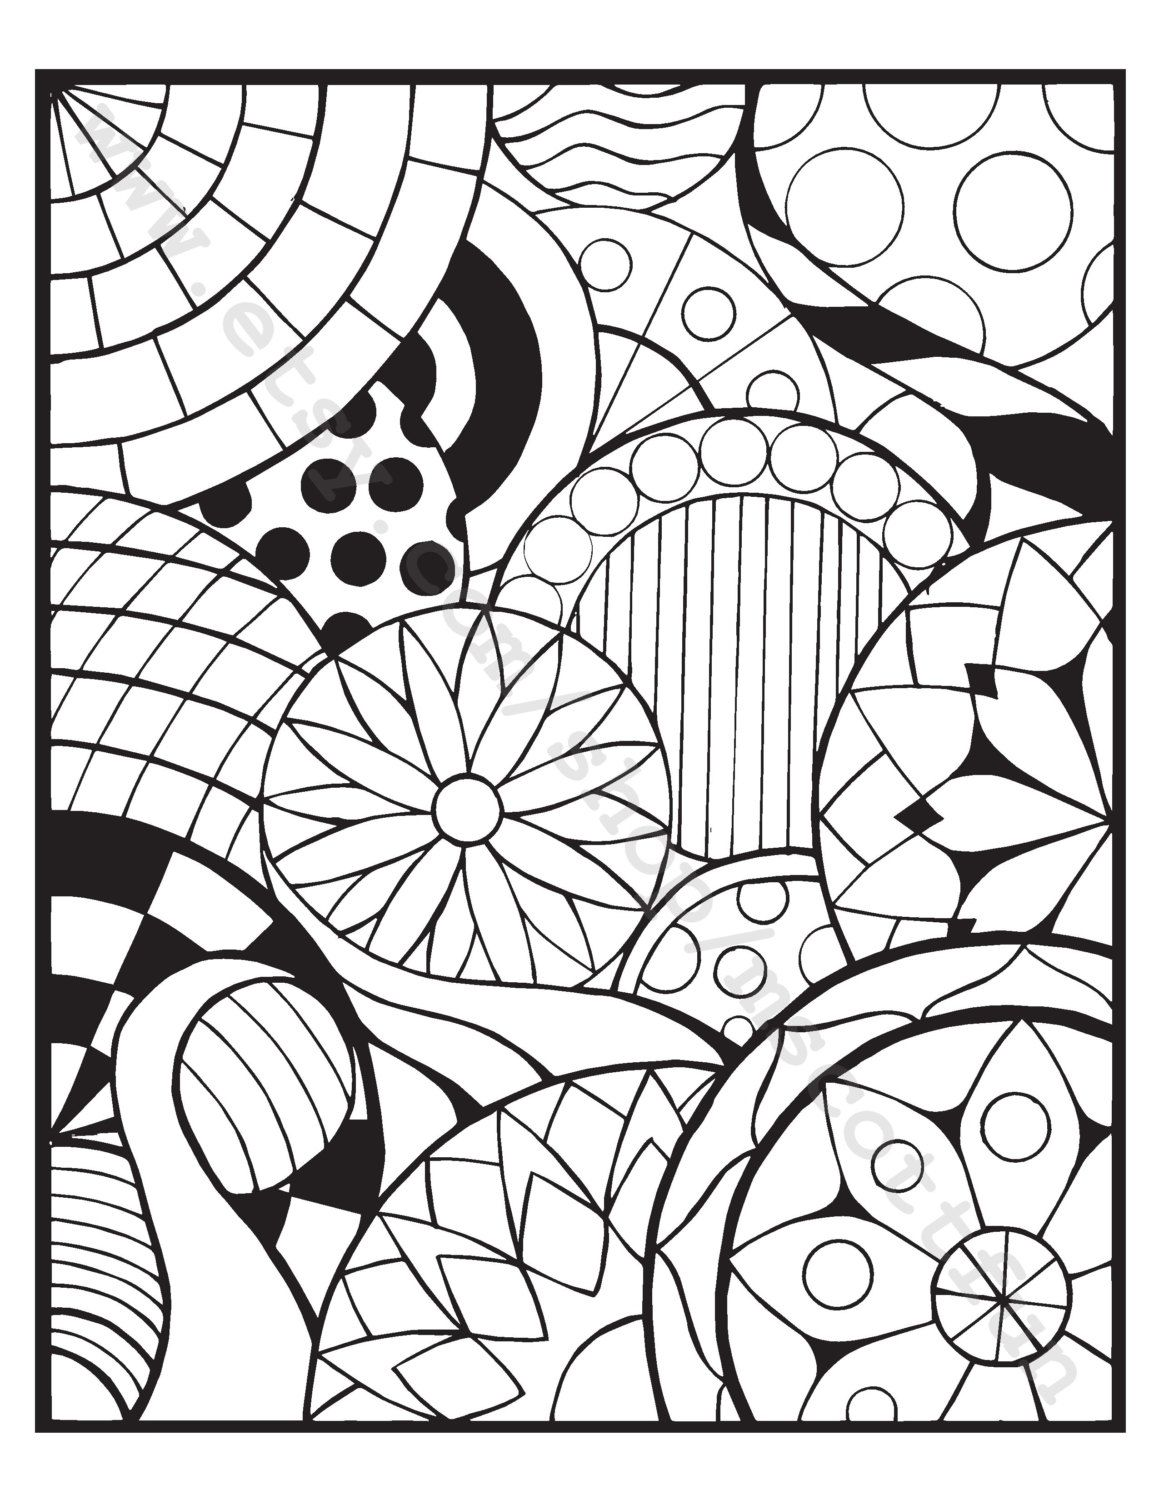 Coloring Page (Circles 3)   Color me Happy   Pinterest   Etsy, Hand ...